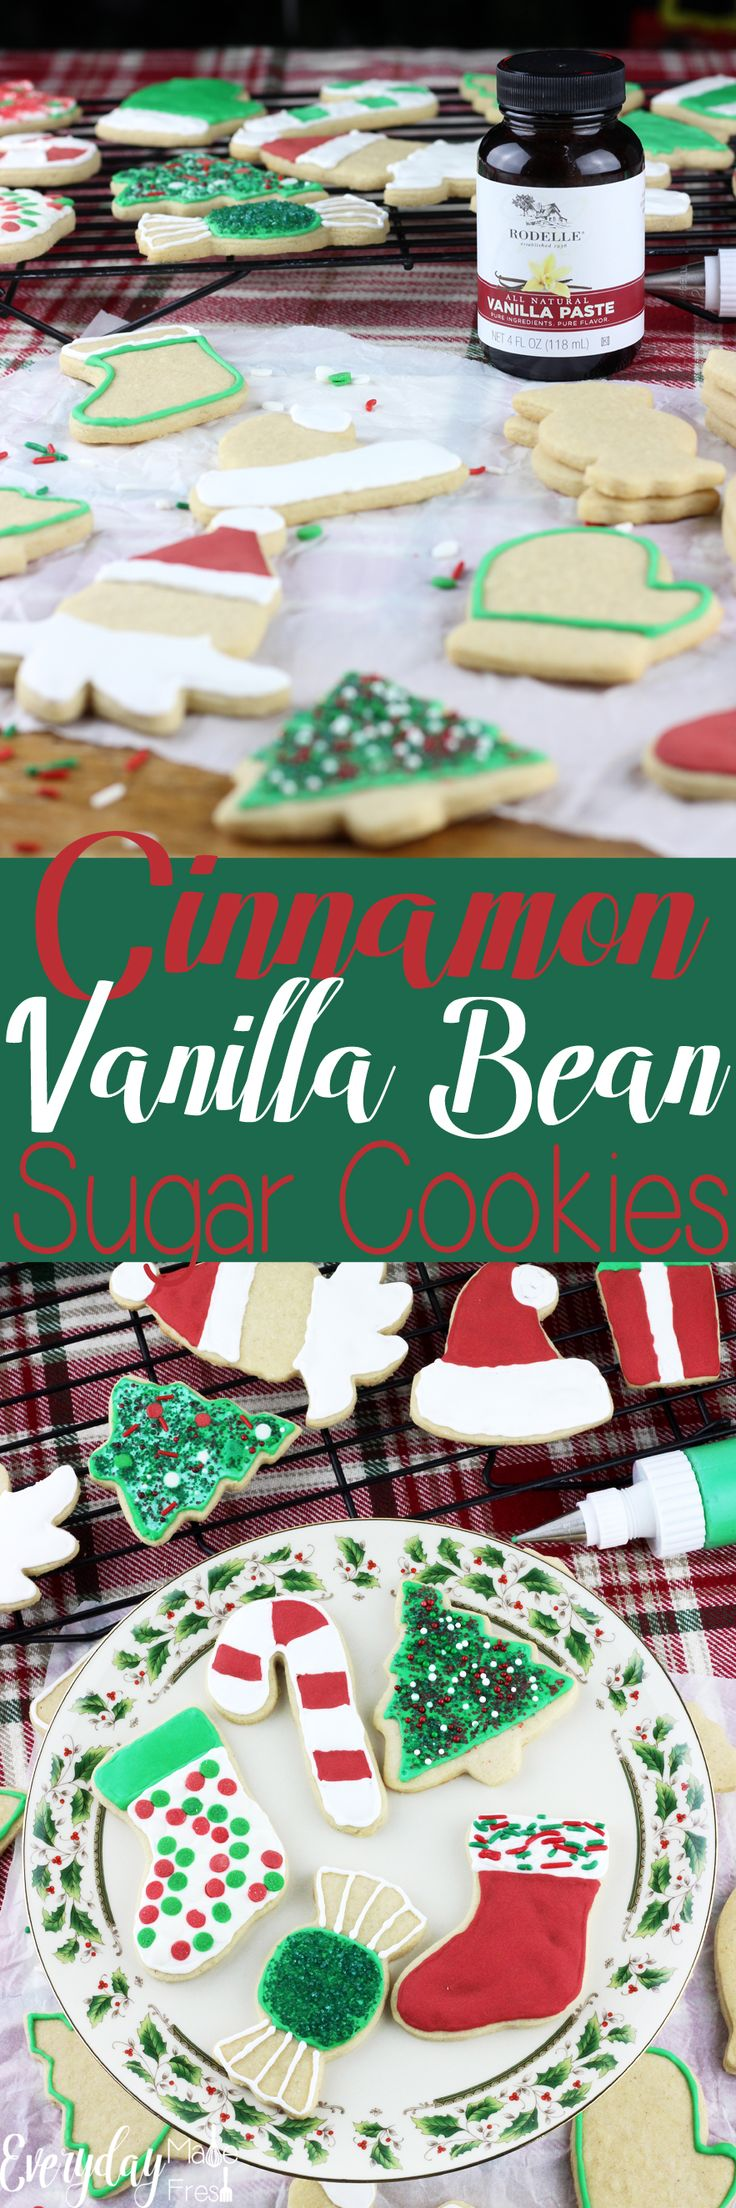 A dash of cinnamon and vanilla bean paste make these Cinnamon Vanilla Bean Sugar Cookies perfect. Well that, and that this a no chill sugar cookie dough!  EverydayMadeFresh.com http://www.everydaymadefresh.com/cinnamon-vanilla-bean-sugar-cookies/